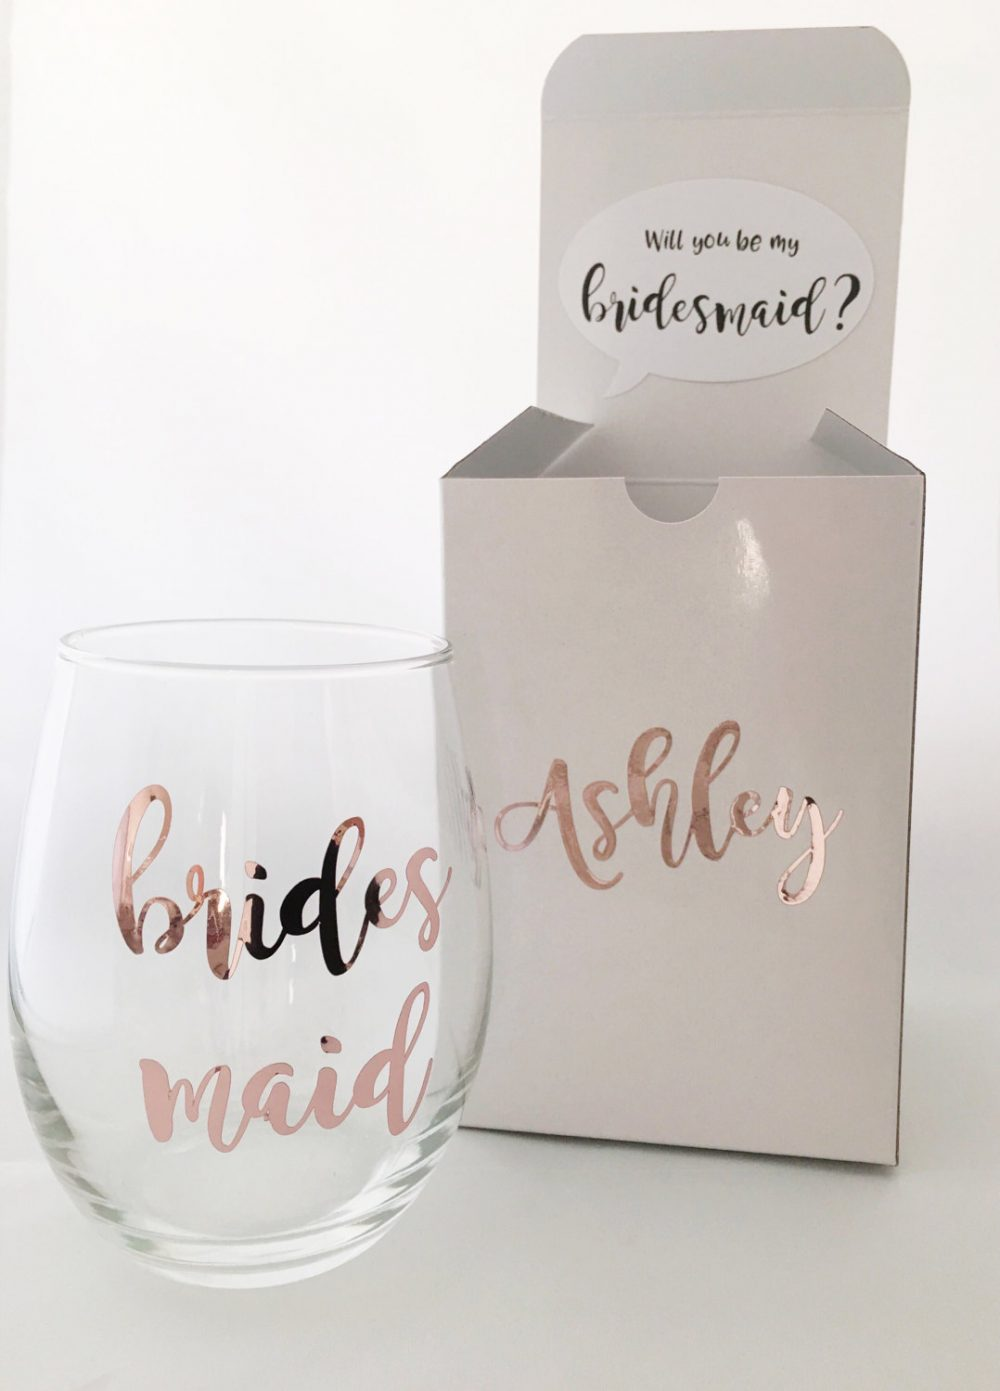 Bridesmaid Proposal Box, Proposal, Rose Gold Wedding, Will You Be My Bridesmaid, Gift, Wine Glass Proposal, Bridal